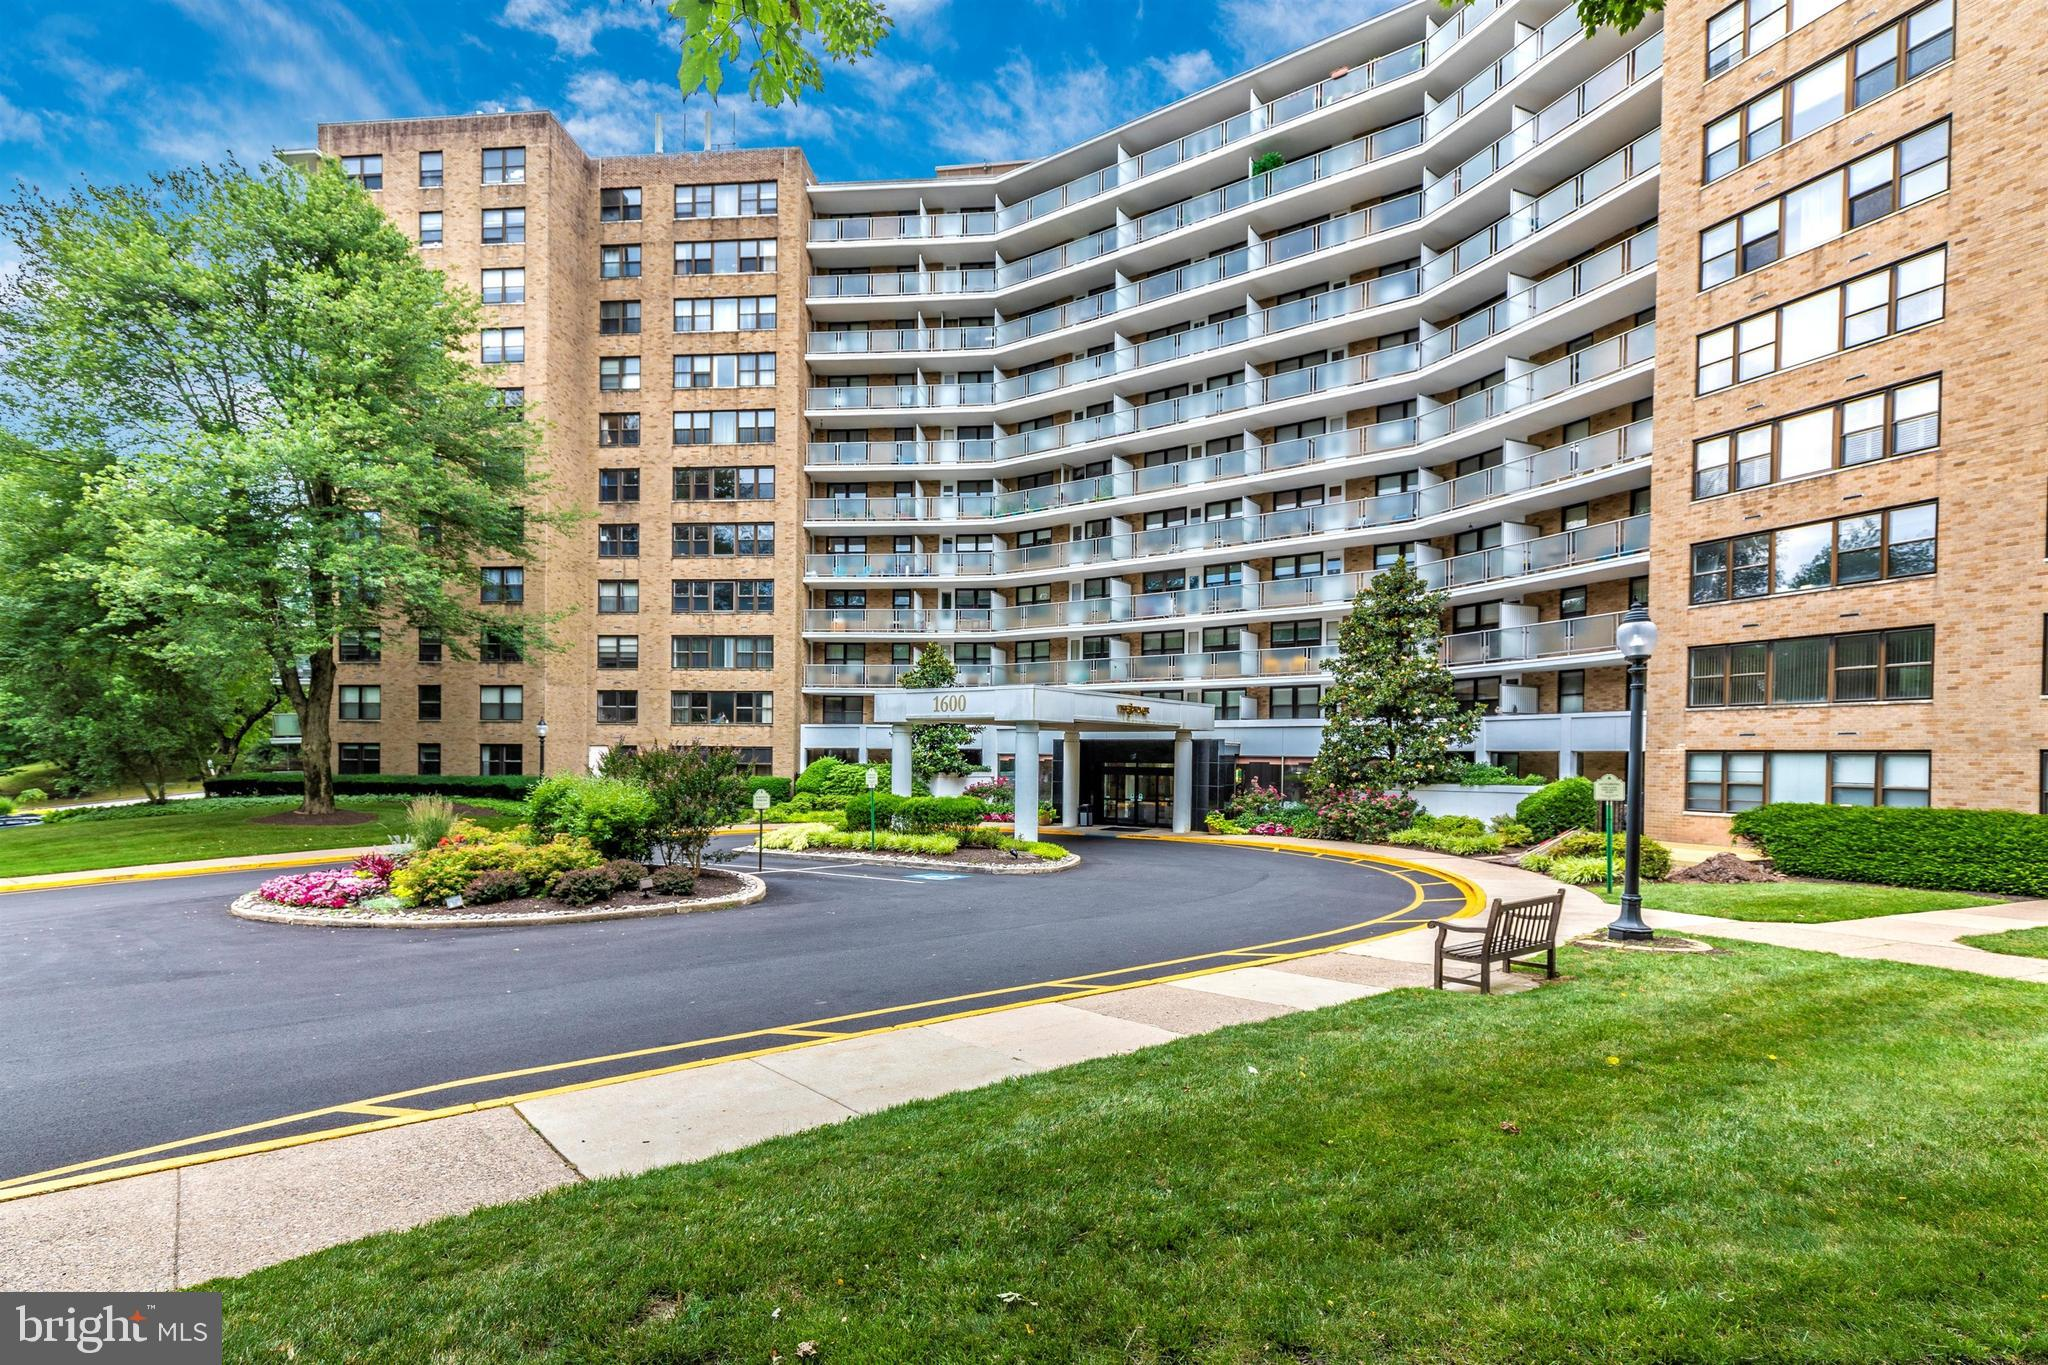 New Listing !  Available immediately!  at The Tower at Oak Hill , high-rise condo community. minutes from center city Phila., Pa.  This home offers Newly  installed wood floors ,  This home features the rarely available  1 bedroom 1 1/2 bath  floorplan! The Kitchen has been updated with a new countertop, hardware, dishwasher and 5 burner stove. Pergo (Nashville Oak) flooring and custom blinds throughout There is a large balcony overlooking the pool. Full sized washer/dryer just installed. Wall of closets in the condo plus basement storage. The building is secured with a 24 hour doorman, Pool, community room and health club included .  Heat, air conditioning , water,  sewer, trash and snow removal, 2 gyms, Pool, and bulk cable is only 91.00 per month!.  Lower Merion Township school bus at door and  #44 bus to center city also at the door.  Available Immediately! Great Home in Great  building on the main line, at a reasonable cost! See it today!